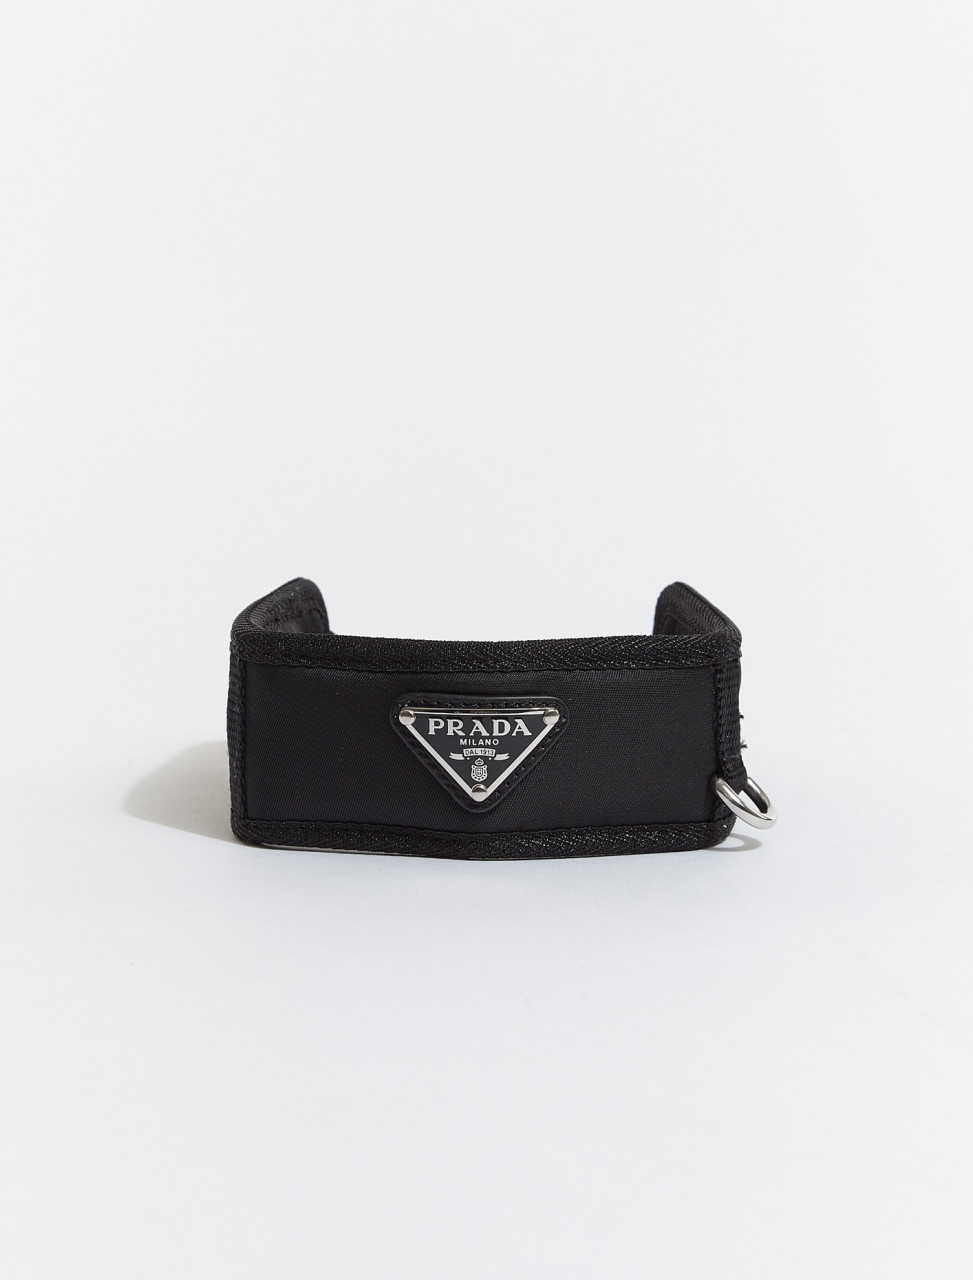 2YC016-F0002 PRADA BUCKLED NYLON LOGO PET COLLAR IN BLACK